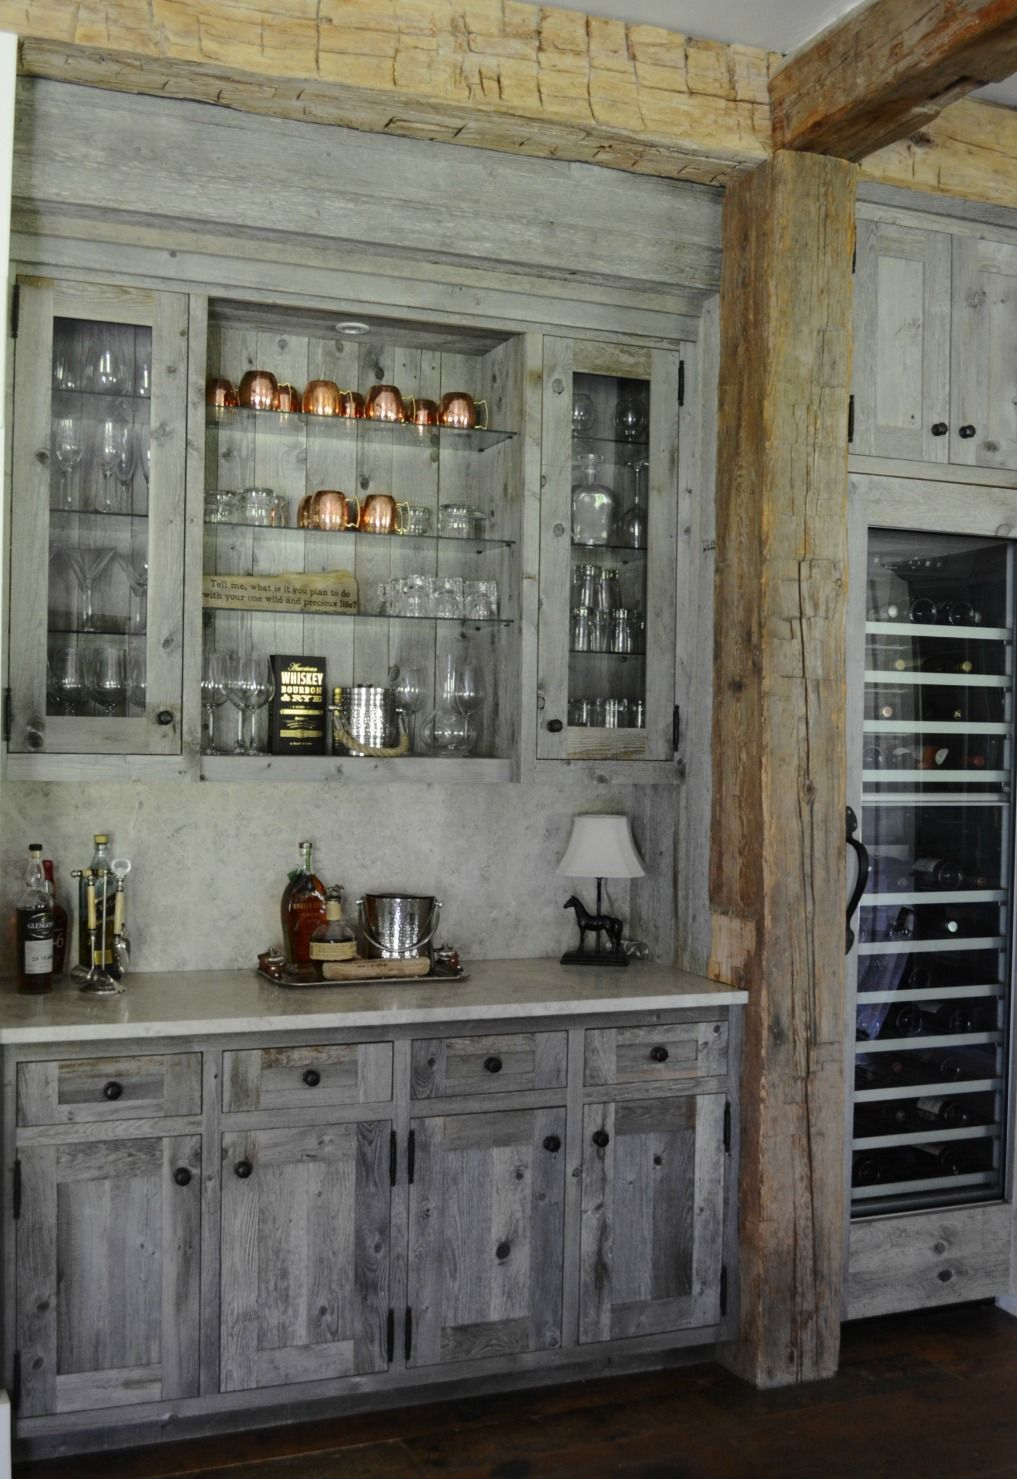 Eclectic Home Tour of Sanctuary Home - welcome to Crow Hollow Ranch on easy home bar designs, rustic industrial bar, best home bar designs, rustic bar plans for building, cottage bar designs, small home bar designs, bedroom designs, homemade rustic bar designs, white home bar designs, rock home bar designs, rustic l-shaped bar sets, rustic commercial bar designs, rustic l-shaped bar prices, back bar designs, irish home bar designs, building custom bar designs, log bar designs, home bar top designs, classic home bar designs, wet bar designs,